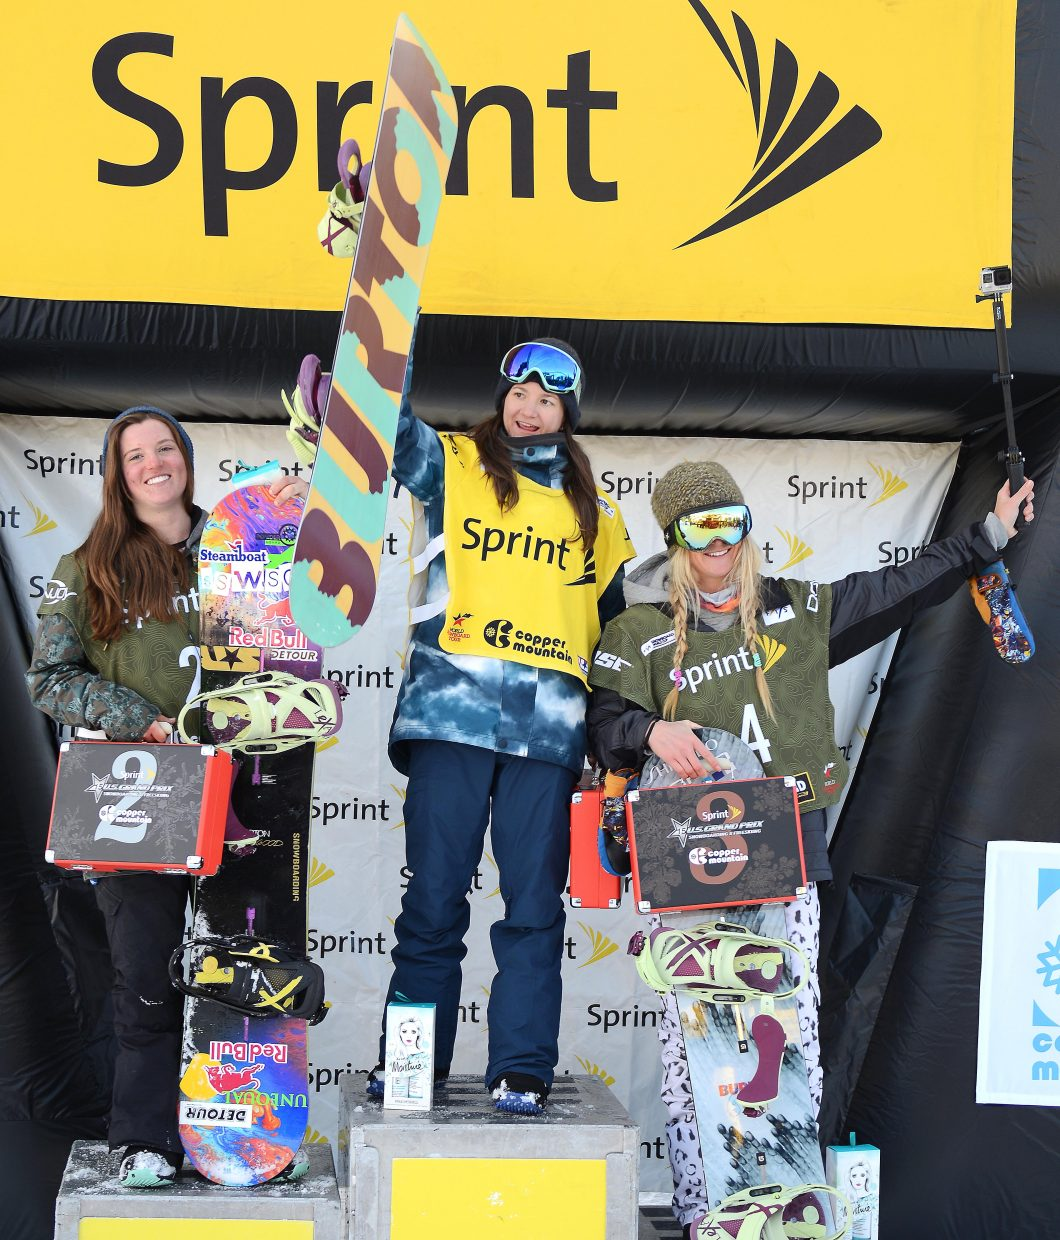 Arielle Gold, left, stands on the podium with Kelly Clark, center, and Hannah Teter, on Saturday after finishing second in the US Grand Prix World Cup snowboard event at Copper Mountain.